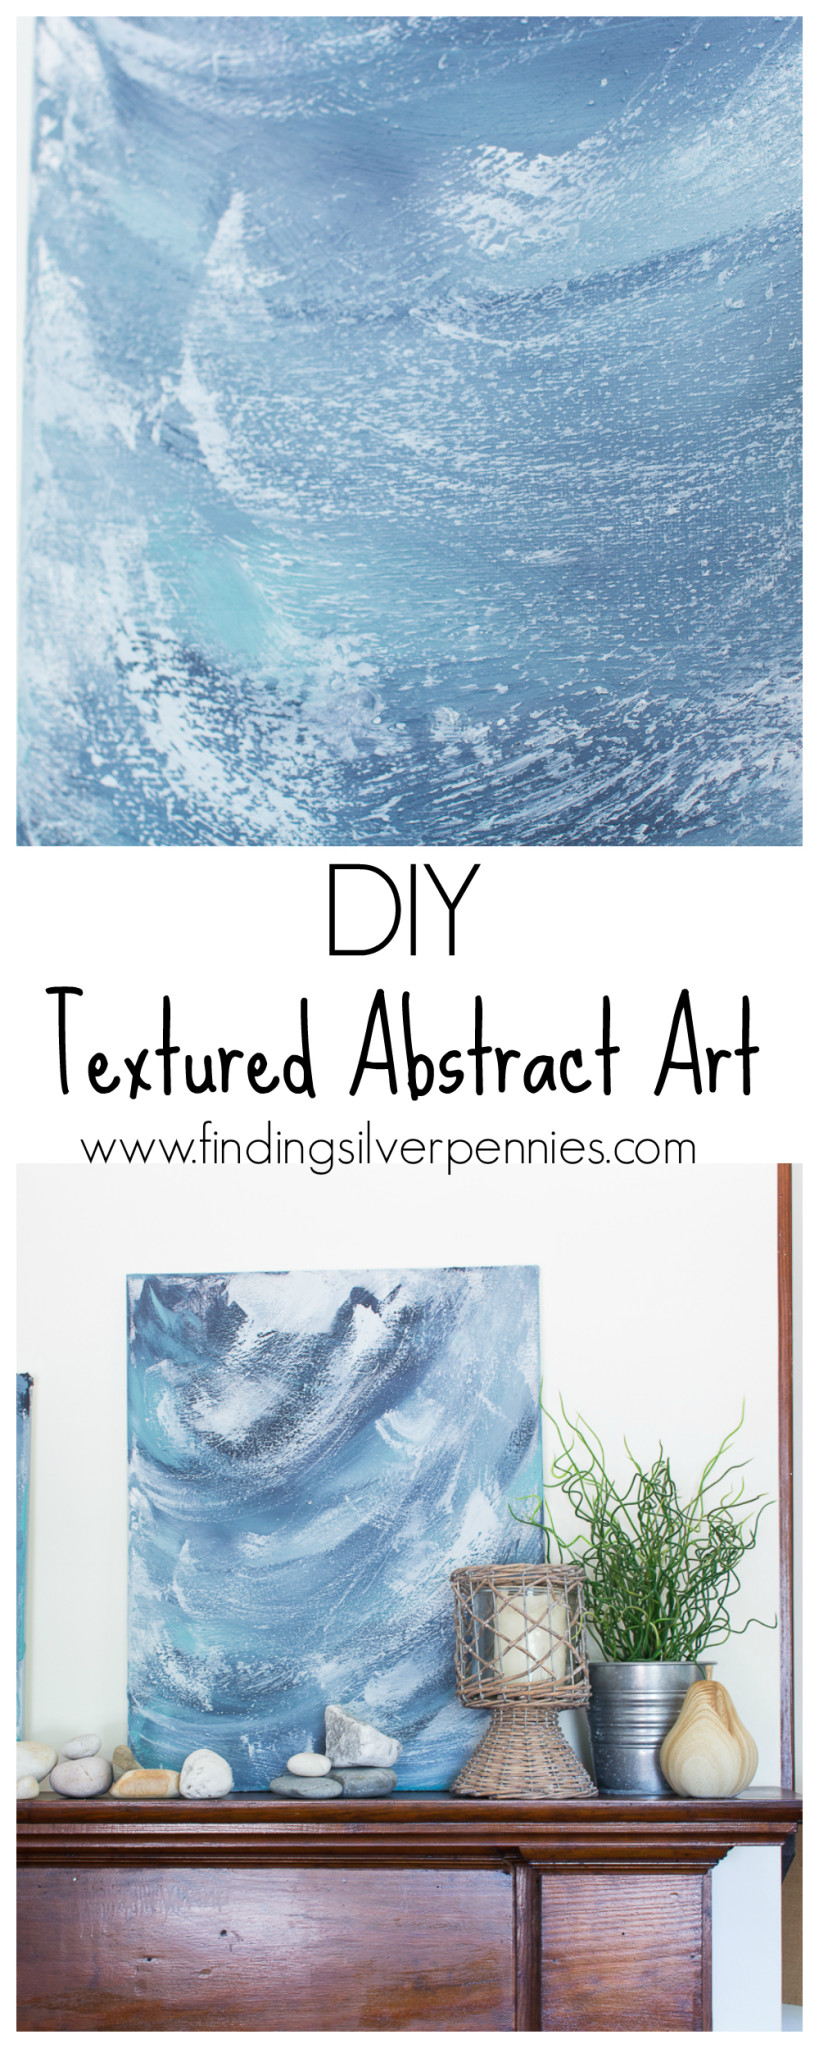 Textured Abstract Art - Finding Silver Pennies